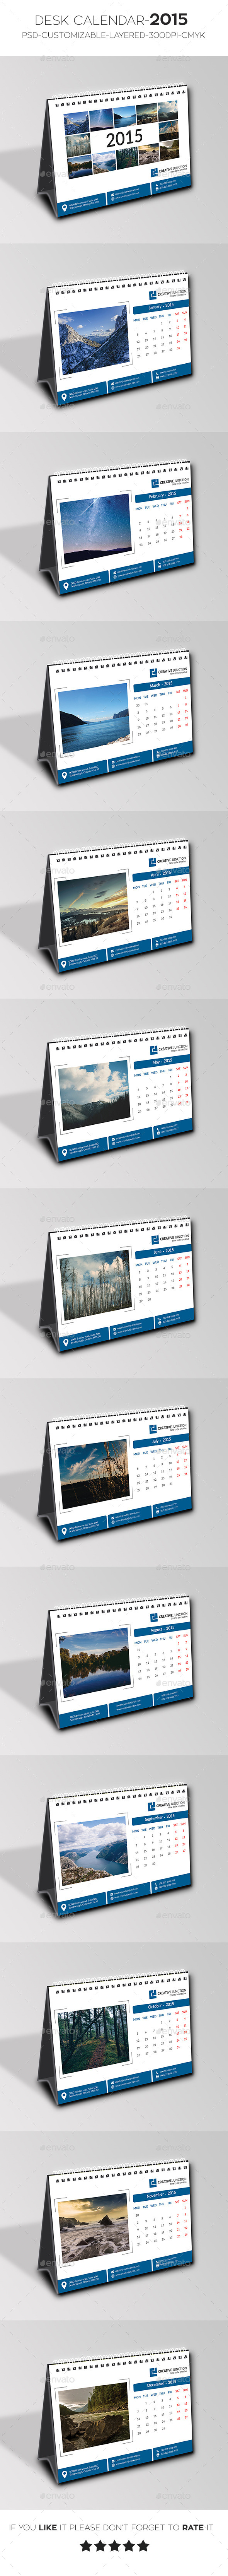 GraphicRiver Desk Calendar 2015 9848911